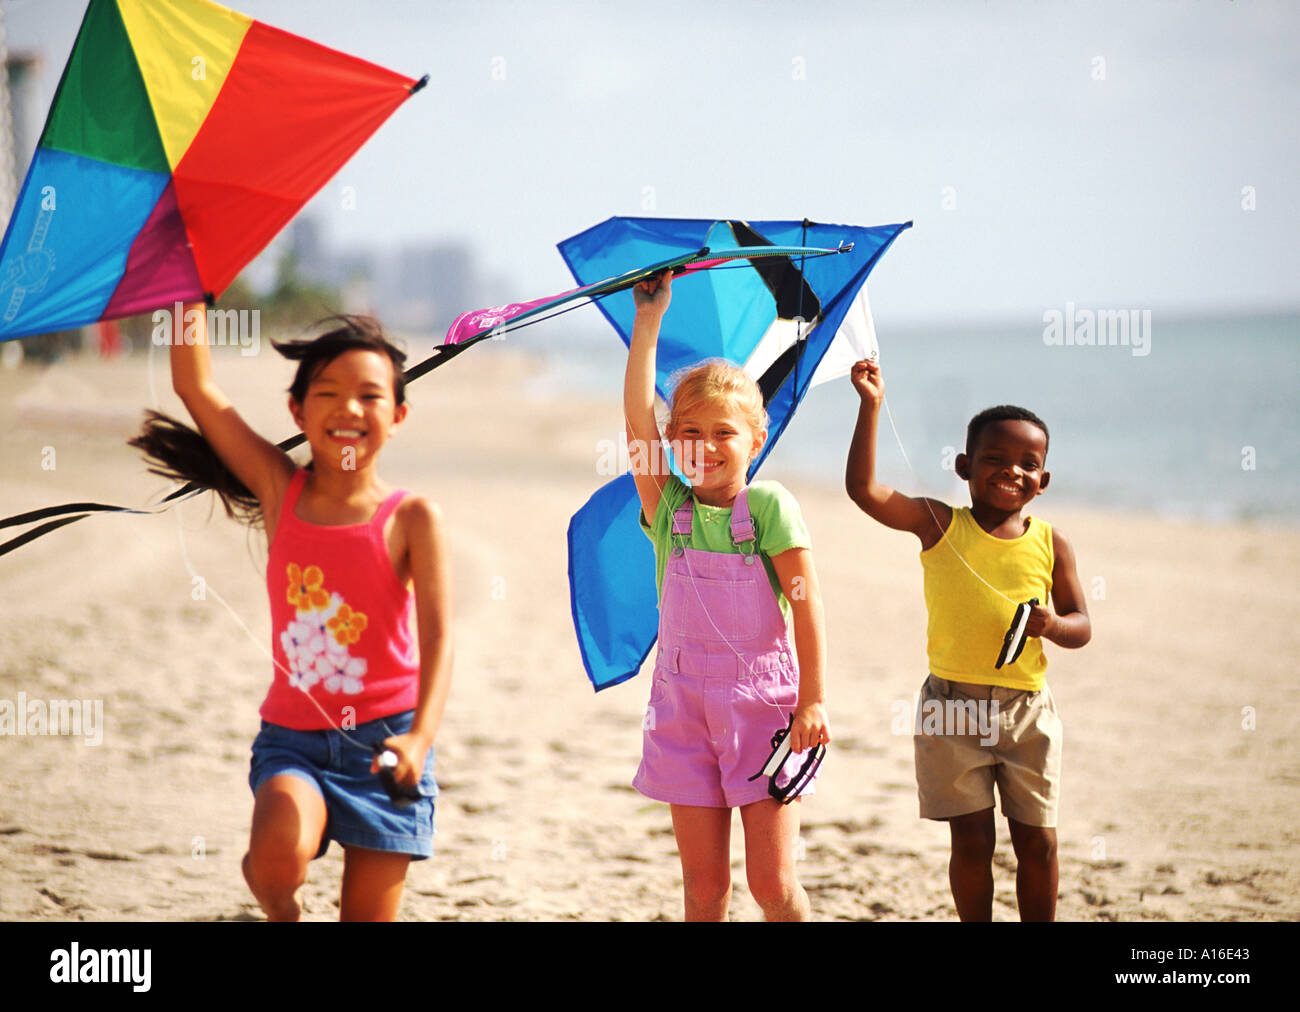 Children Age 6 Flying Kites On The Beach With Mixed Ethnic Kids